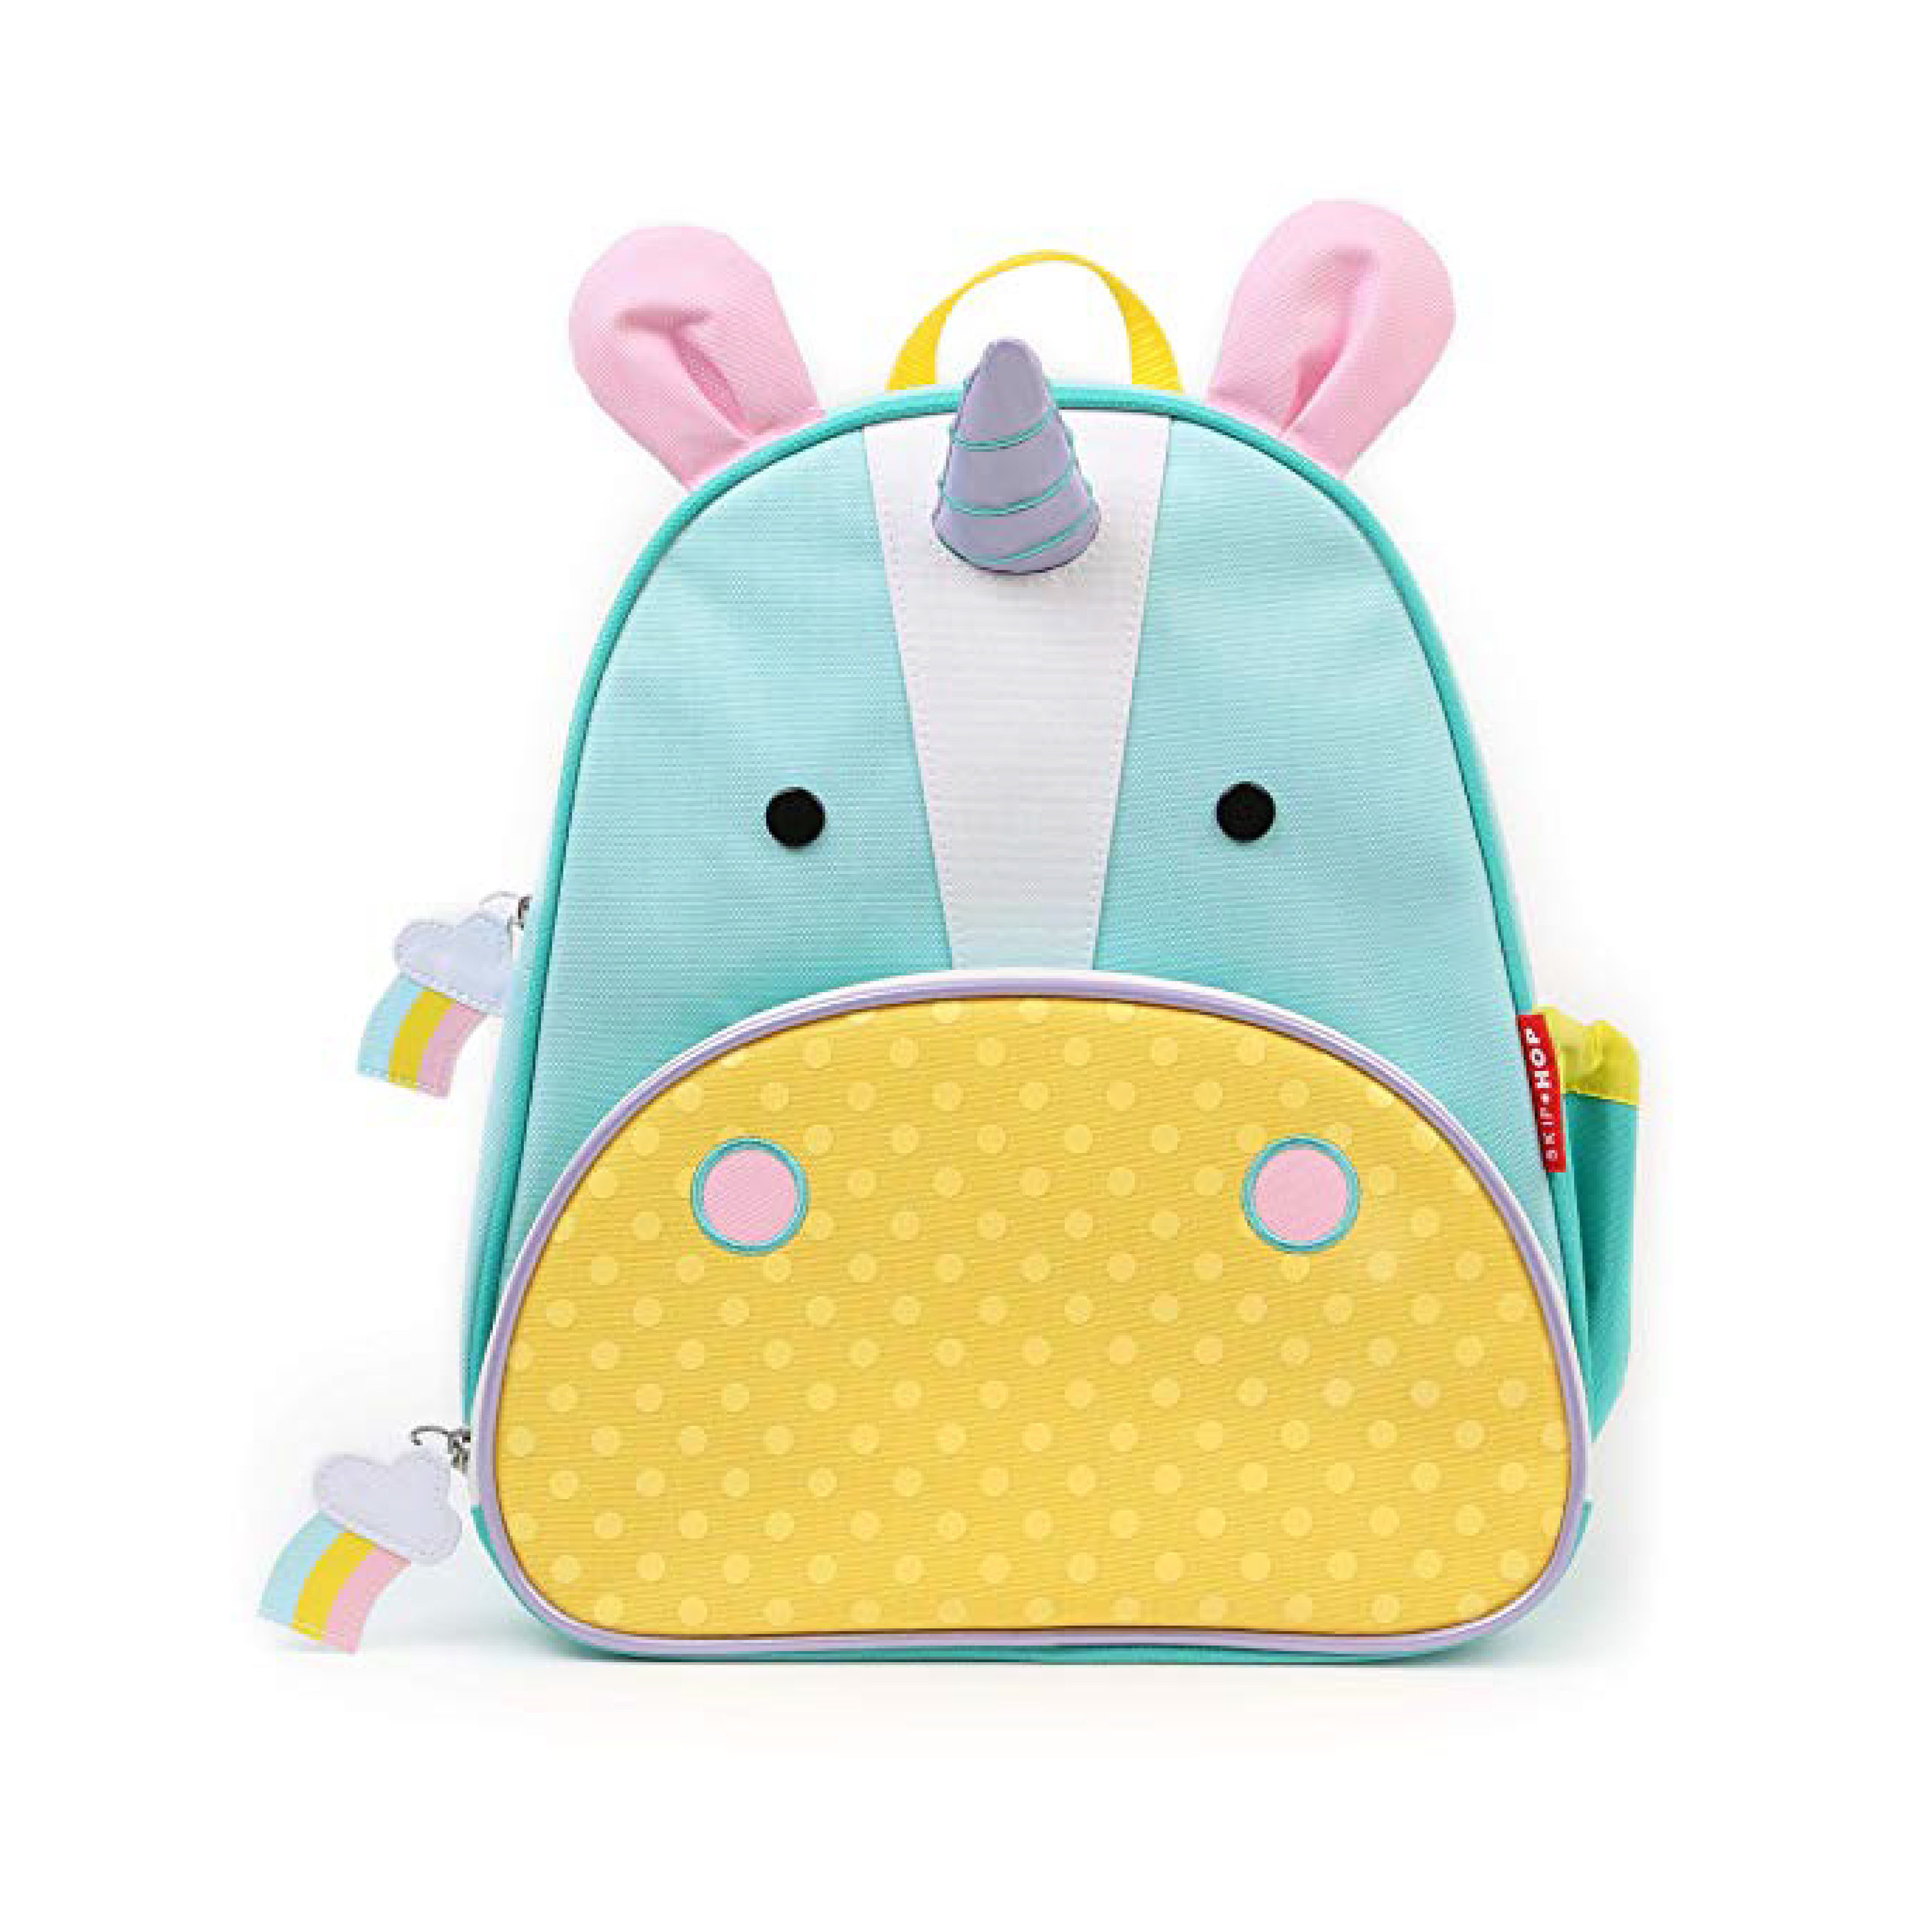 Skip Hop Todd - Perfect for your little girls. And an Amazon order away!